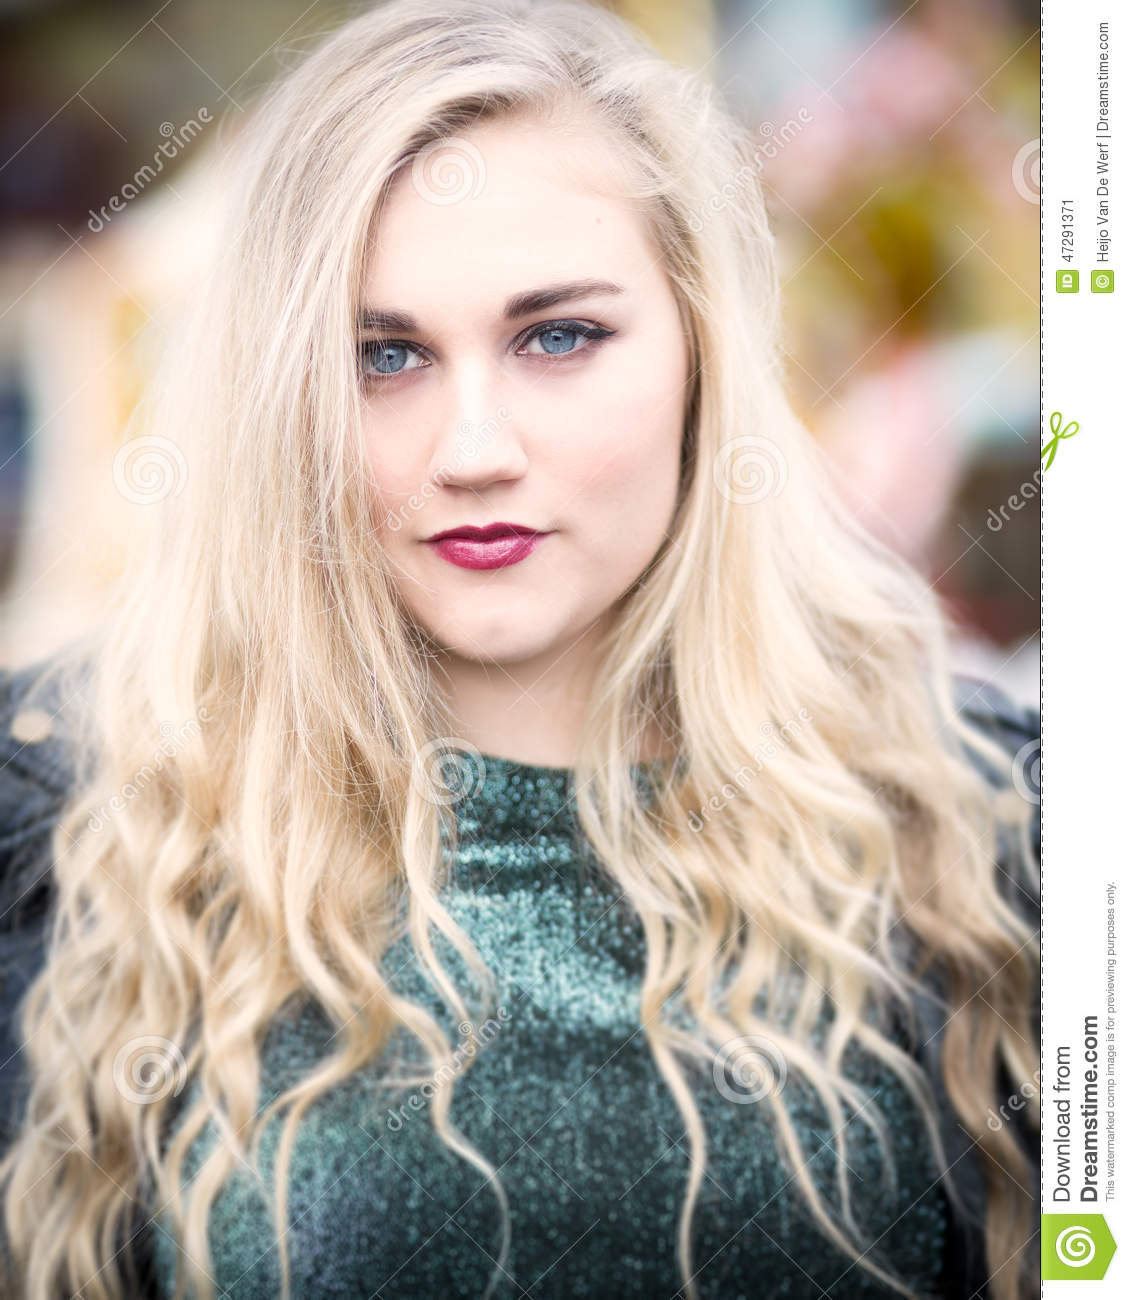 blondebluse toppe